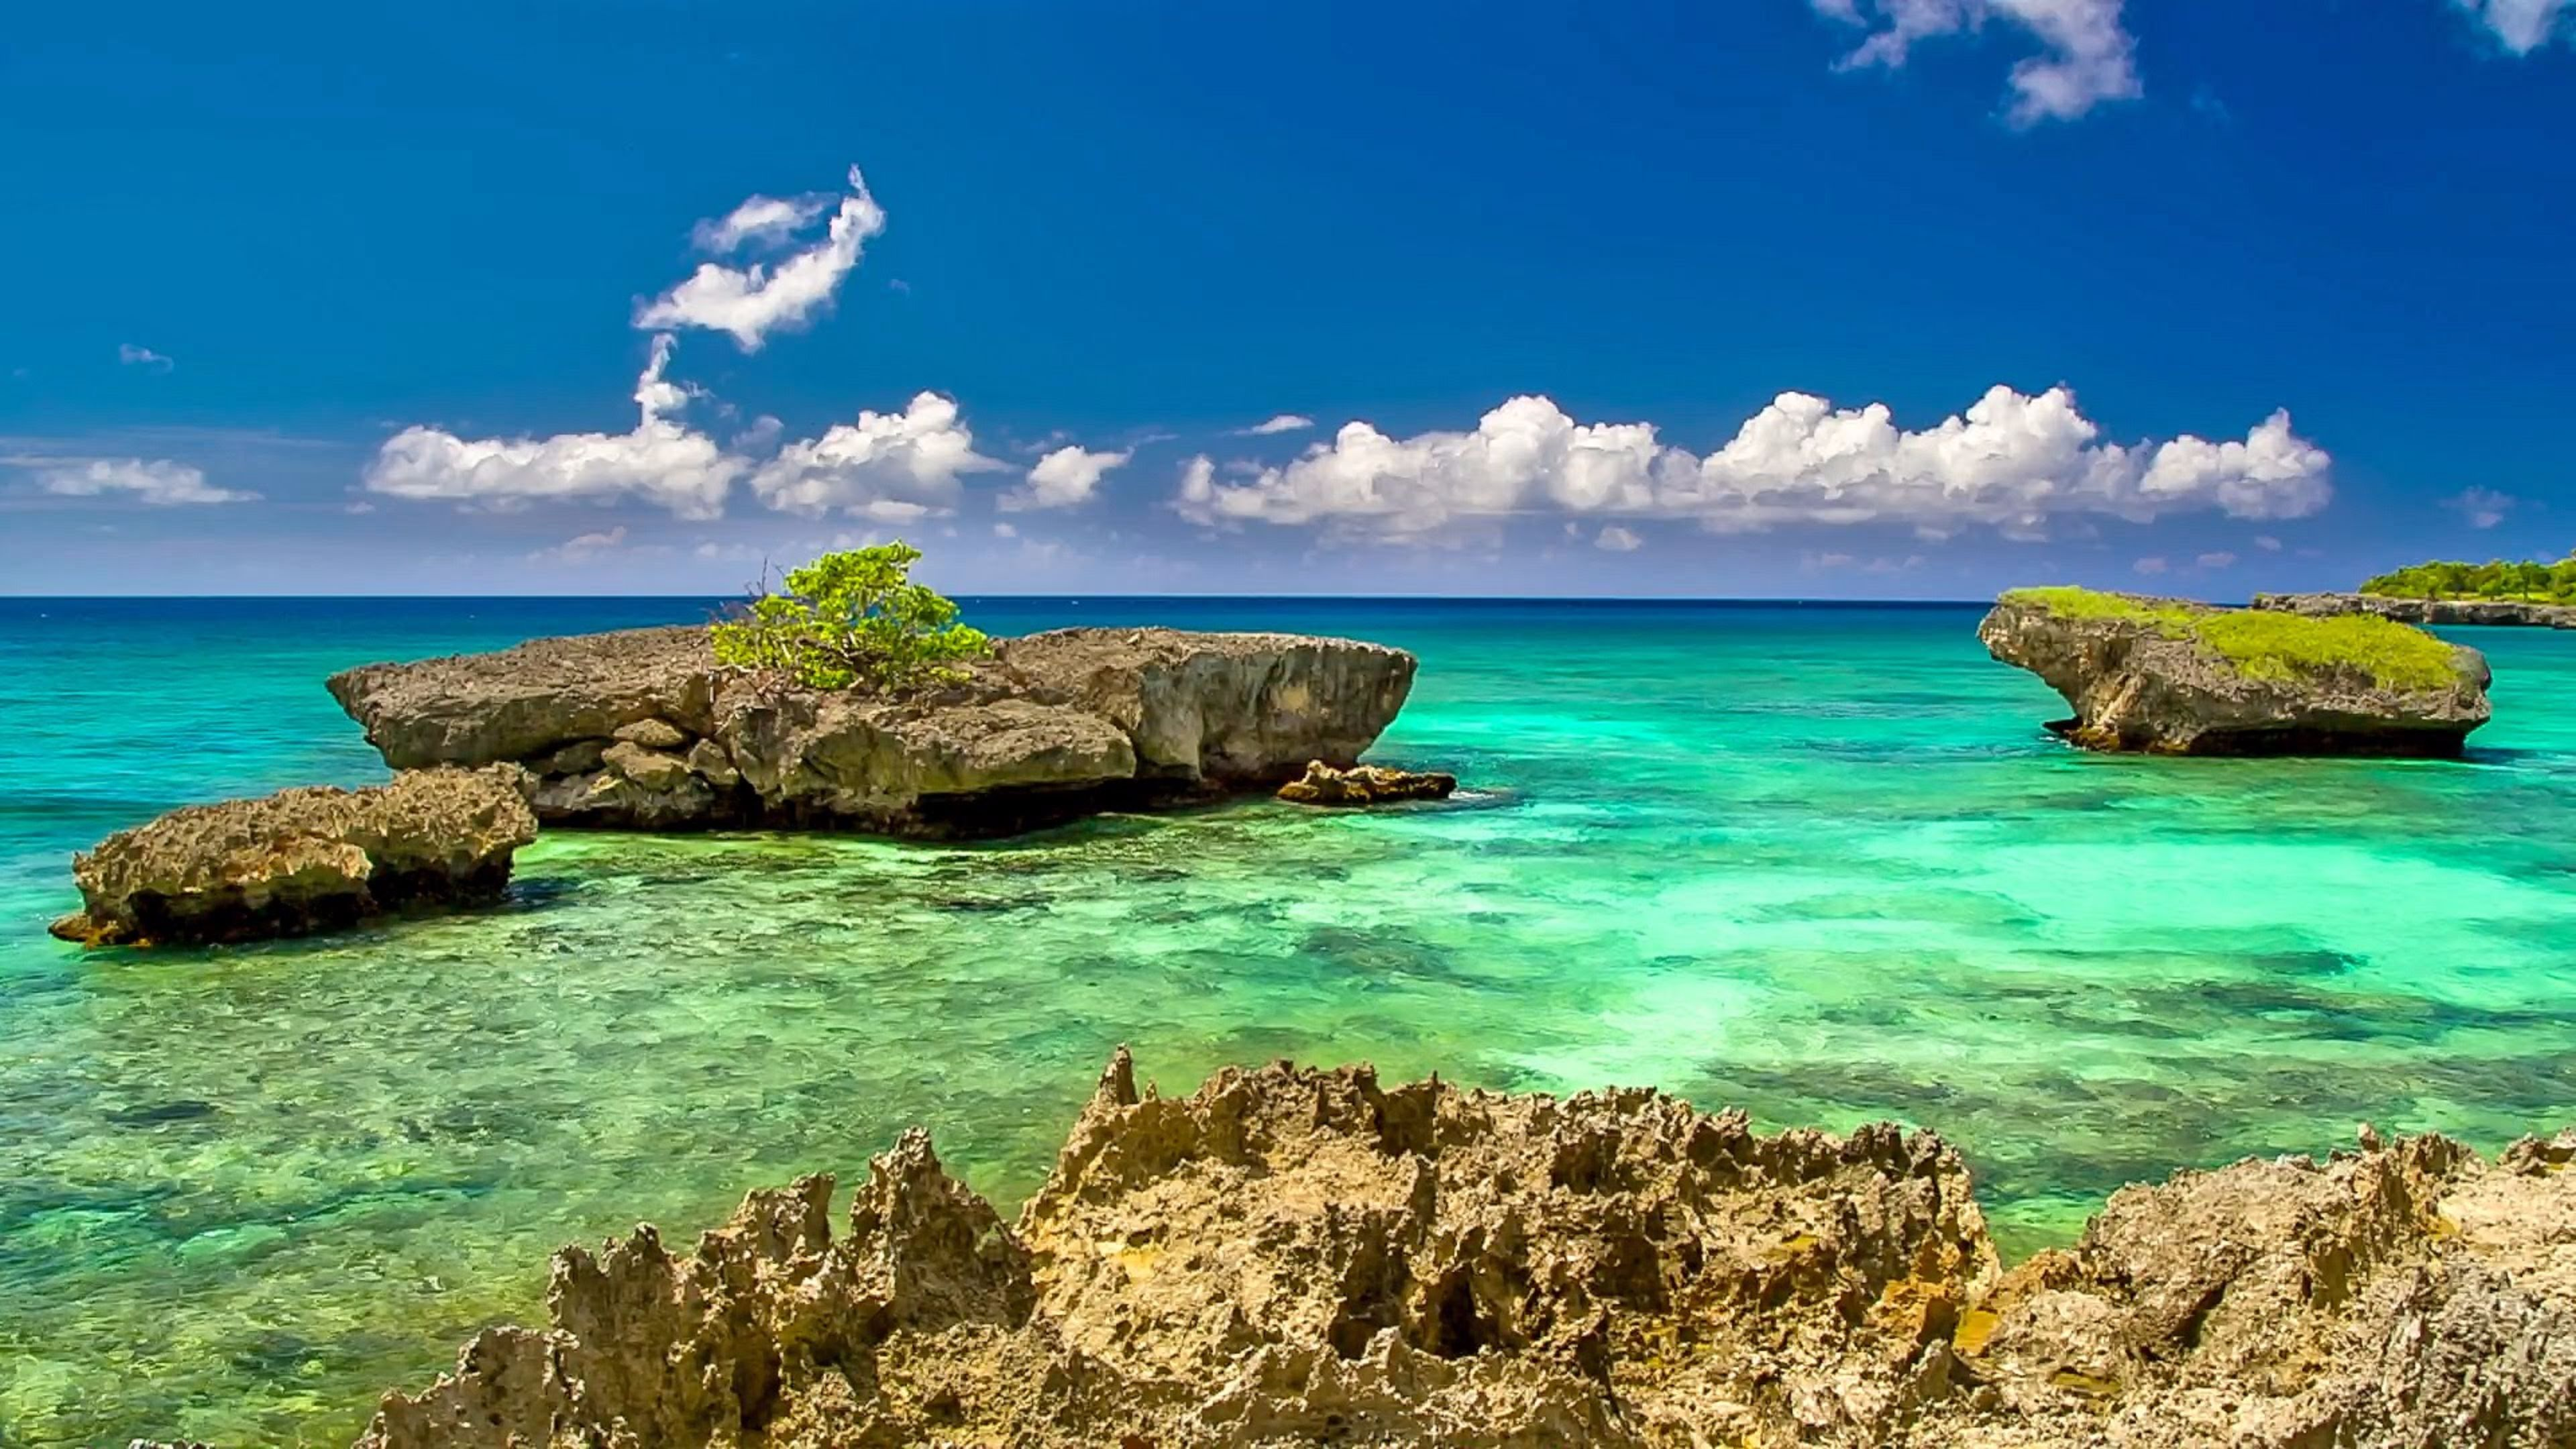 caribbean sea wonderful wallpapers desktop background